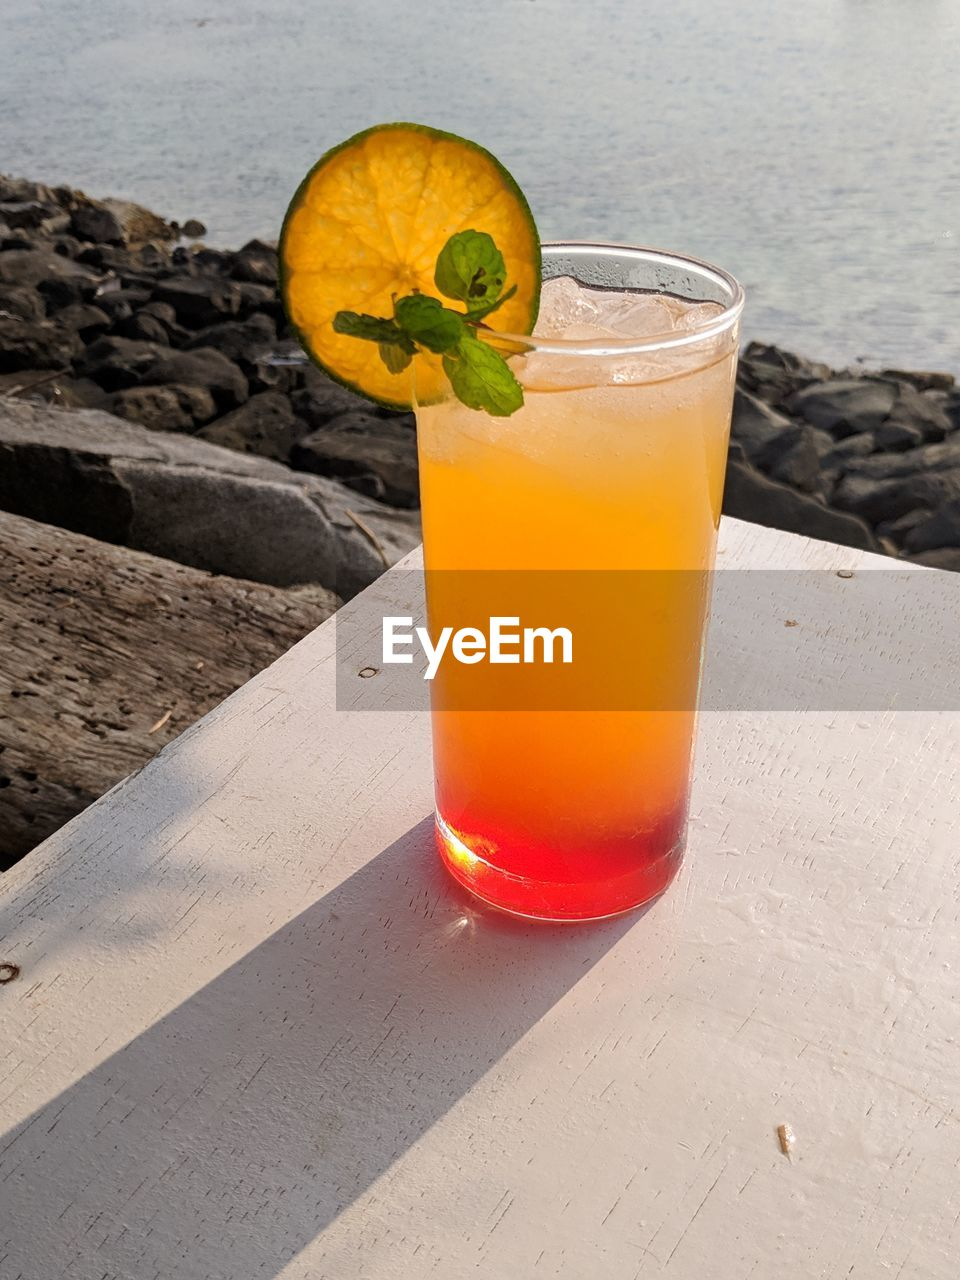 refreshment, glass, drink, drinking glass, food and drink, household equipment, freshness, fruit, alcohol, orange color, healthy eating, food, table, no people, cocktail, close-up, still life, wood - material, citrus fruit, nature, mint leaf - culinary, herb, orange, tropical drink, garnish